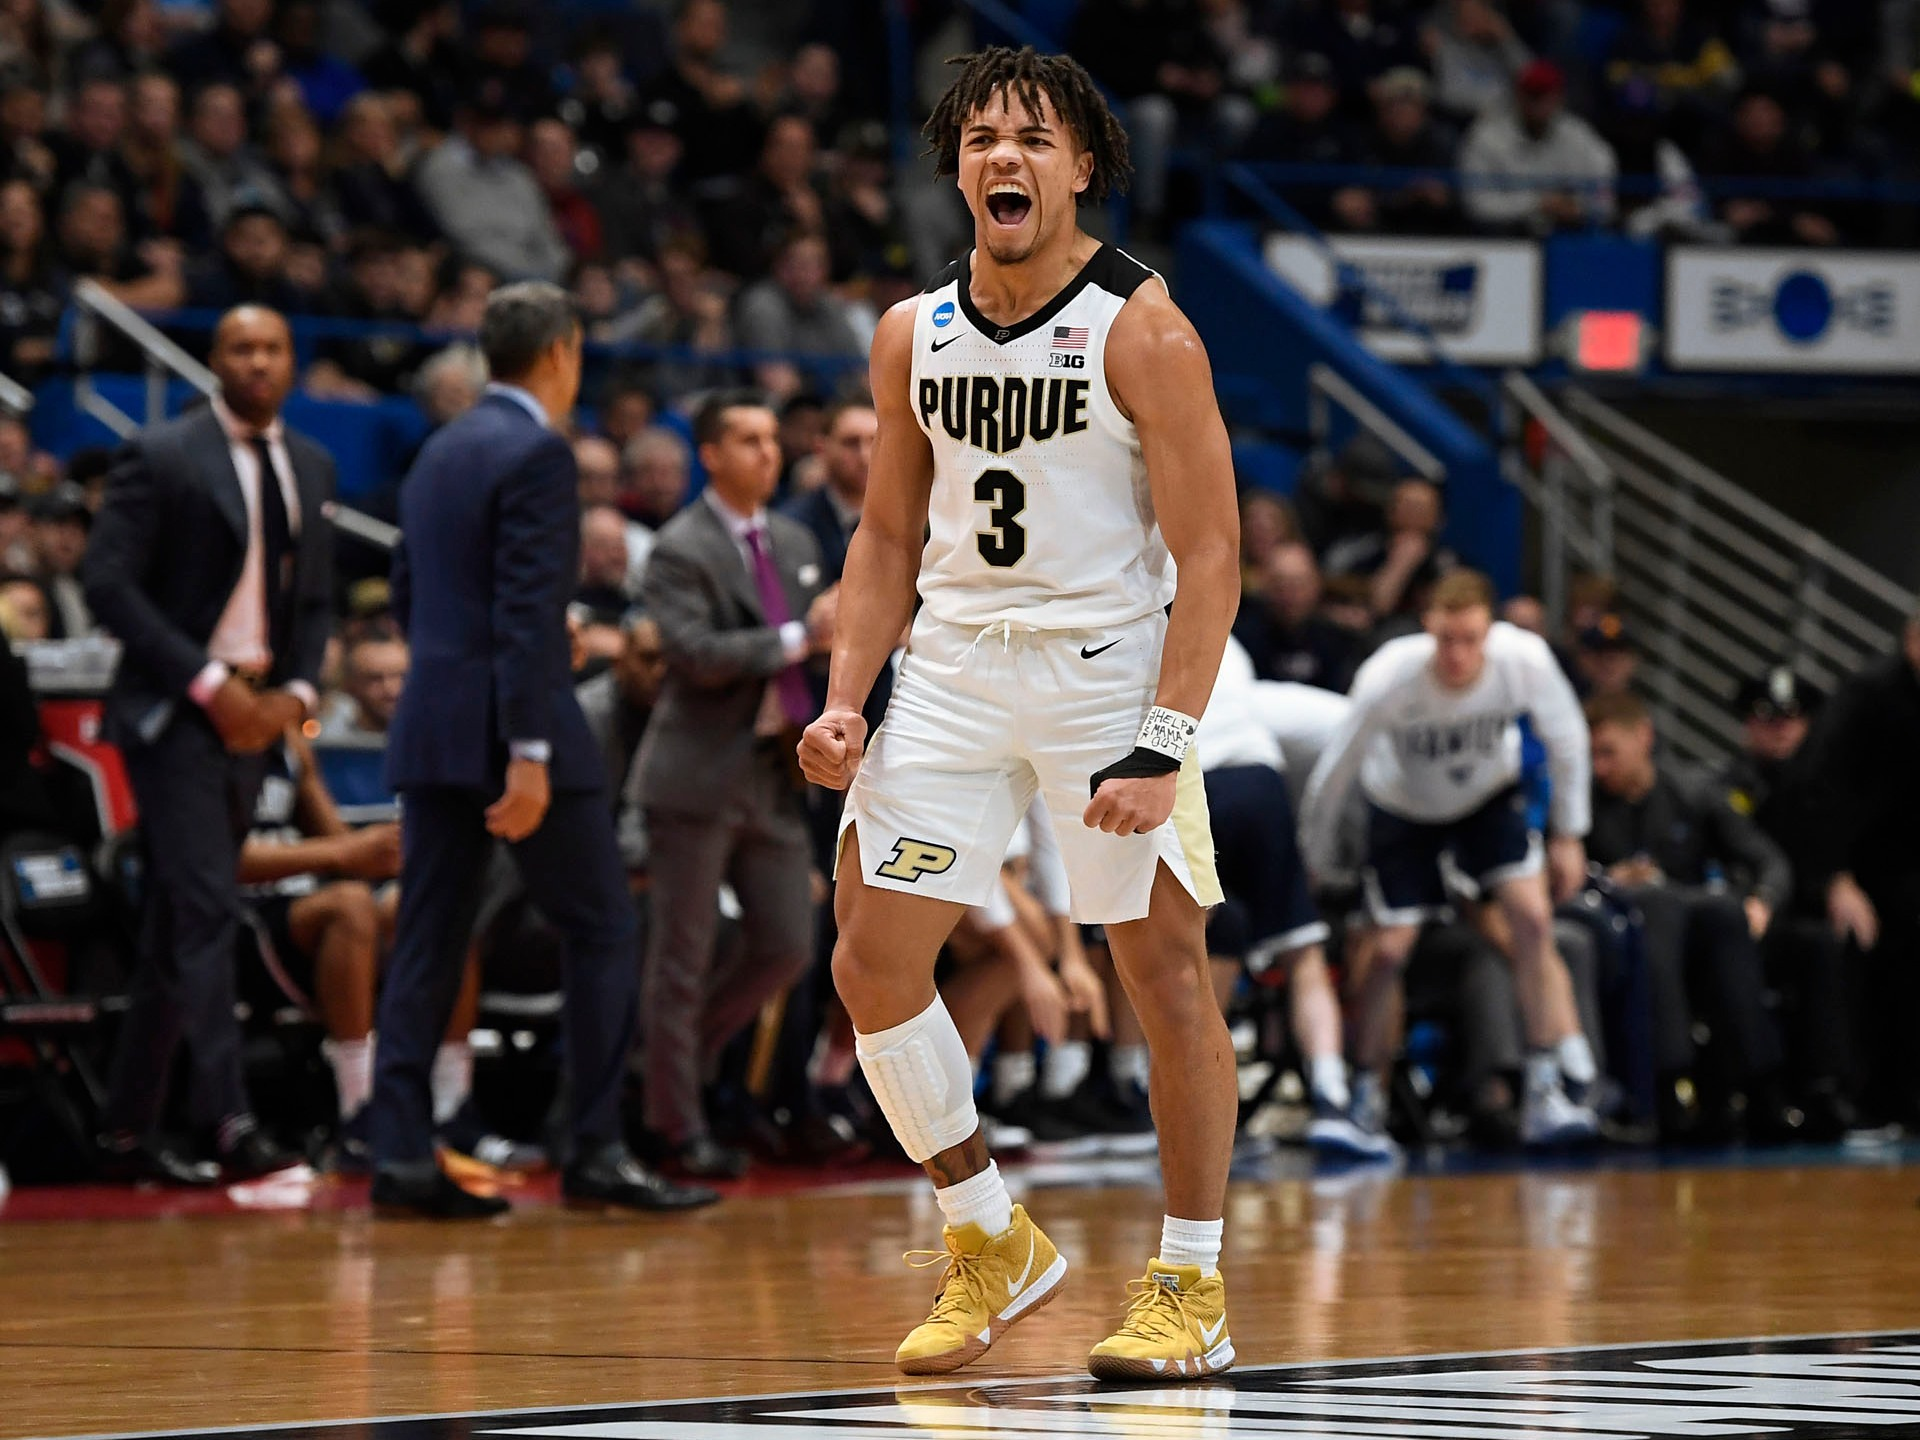 NCAA Villanova Purdue Basketball_1553439328691